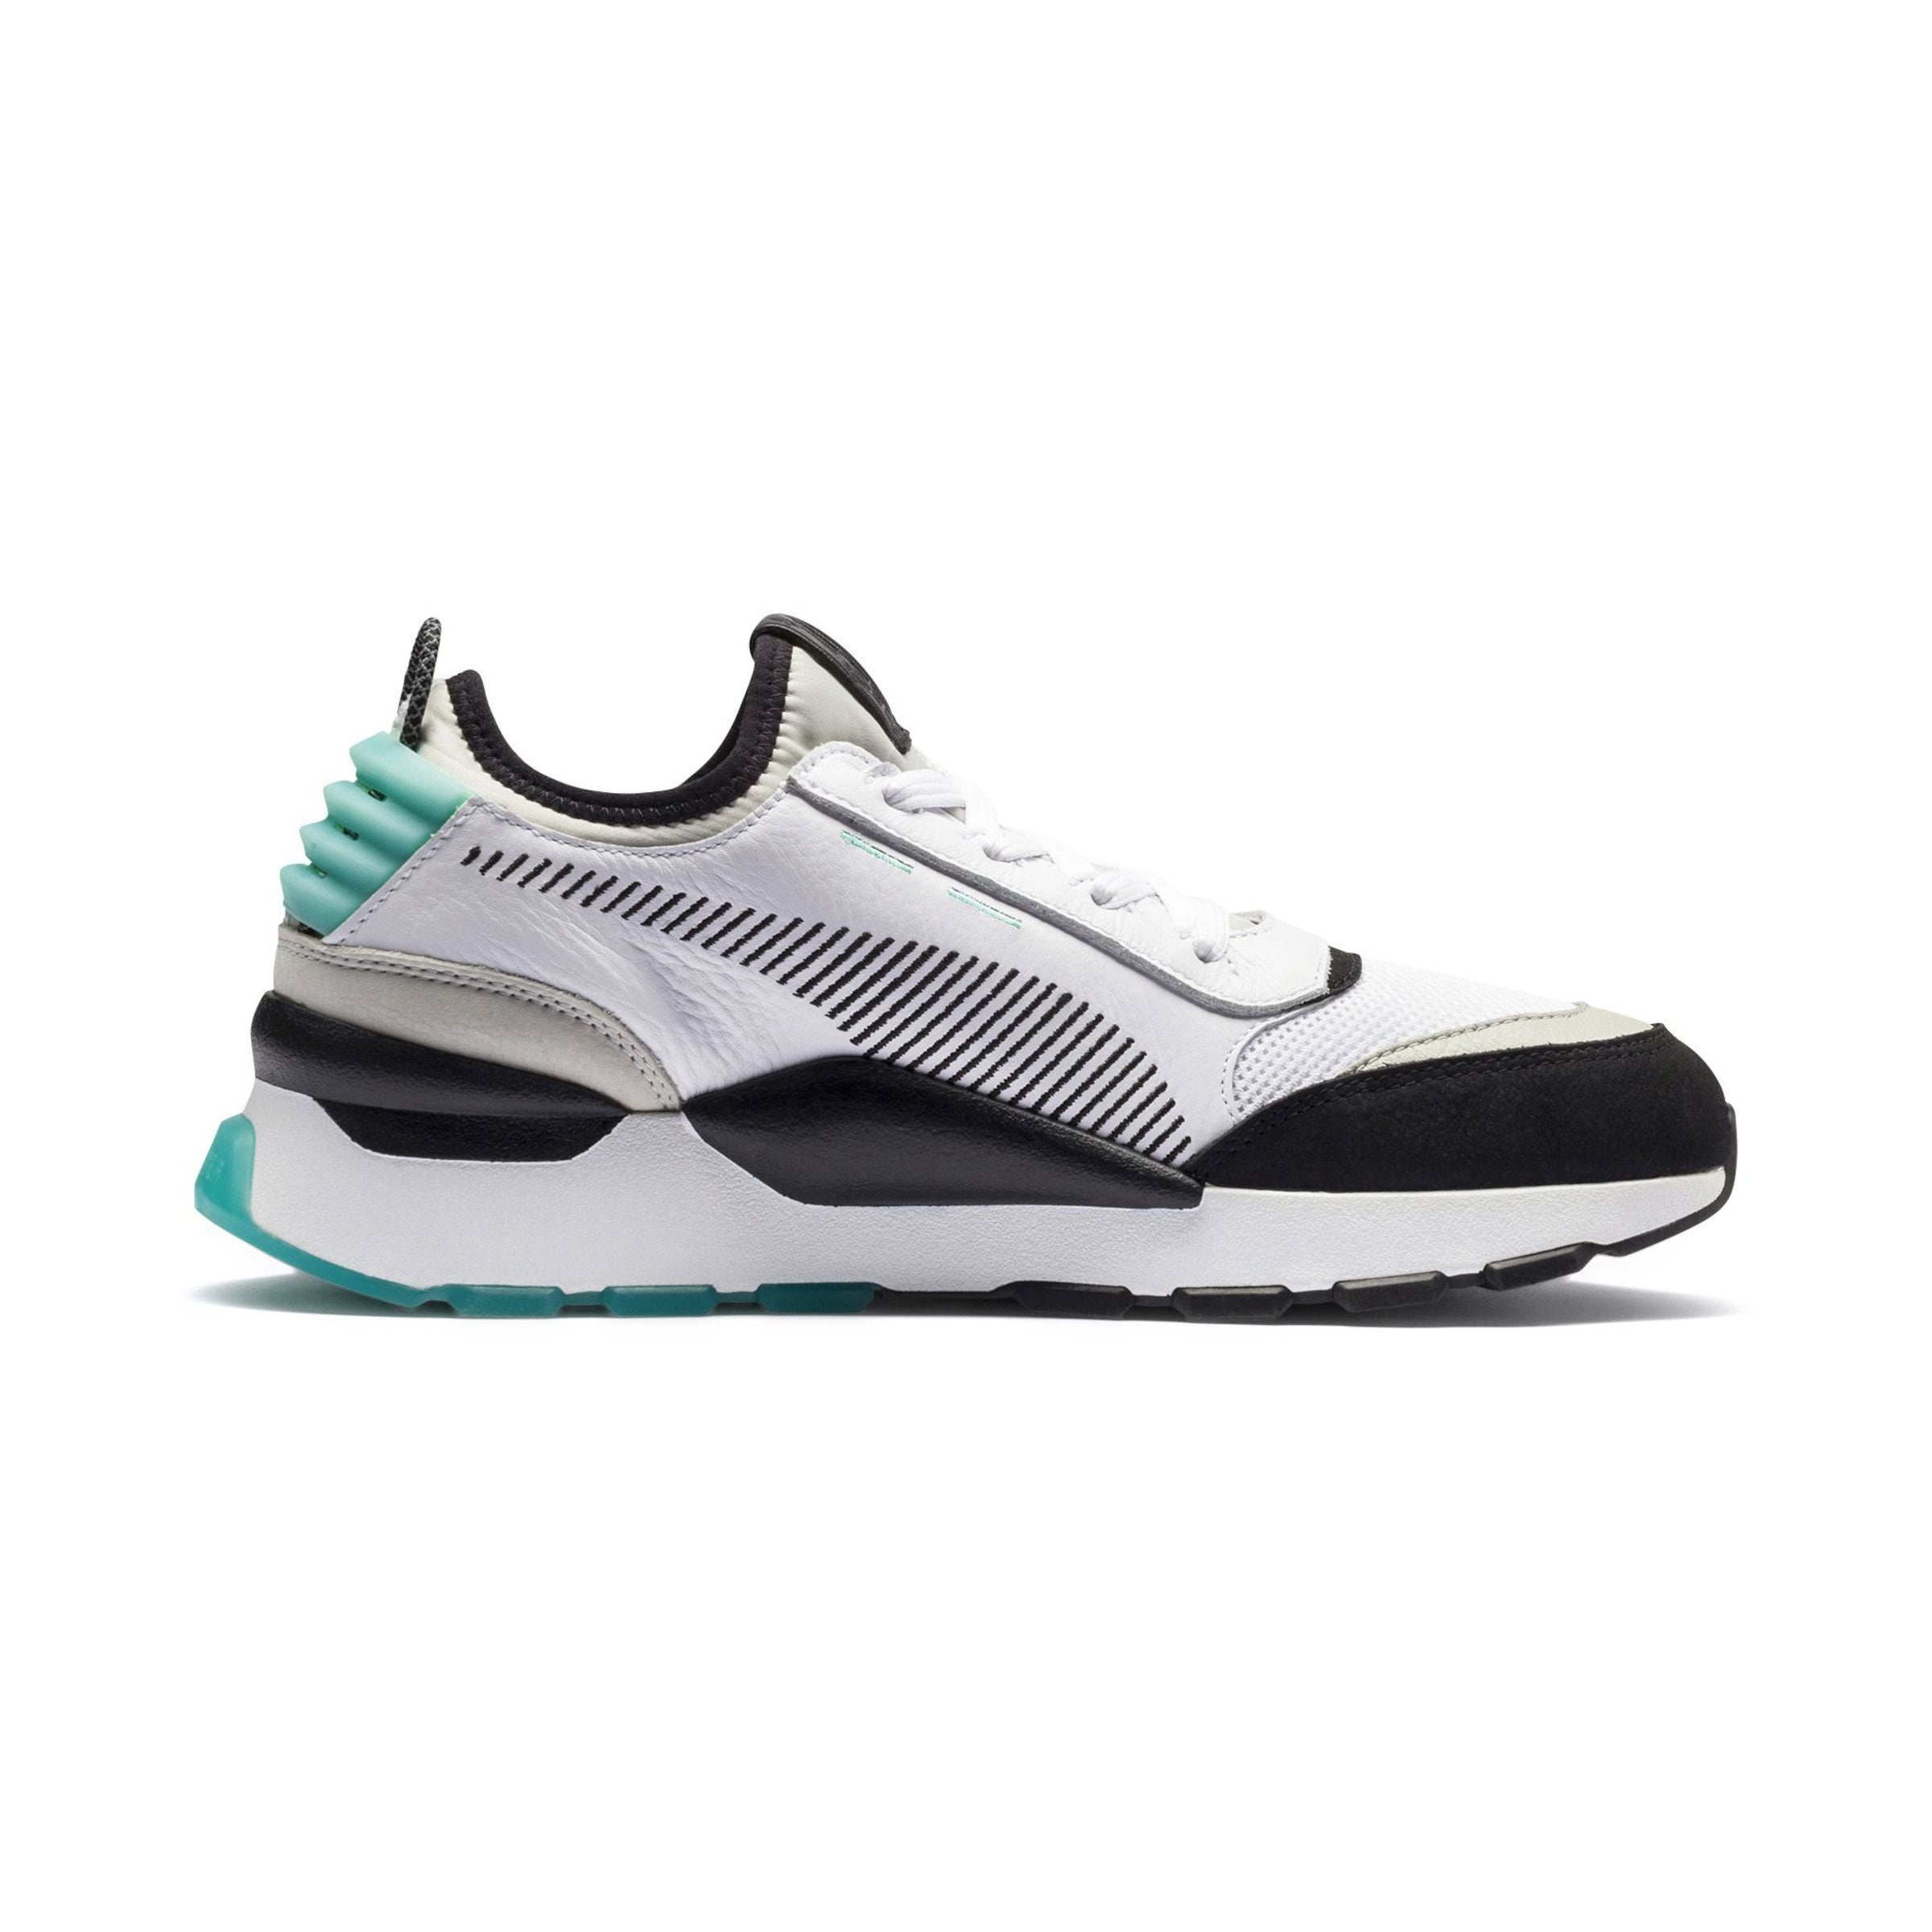 'rs Basses Perle Baskets Puma invention' En 0 Re AquaNoir Blanc v8nmN0w